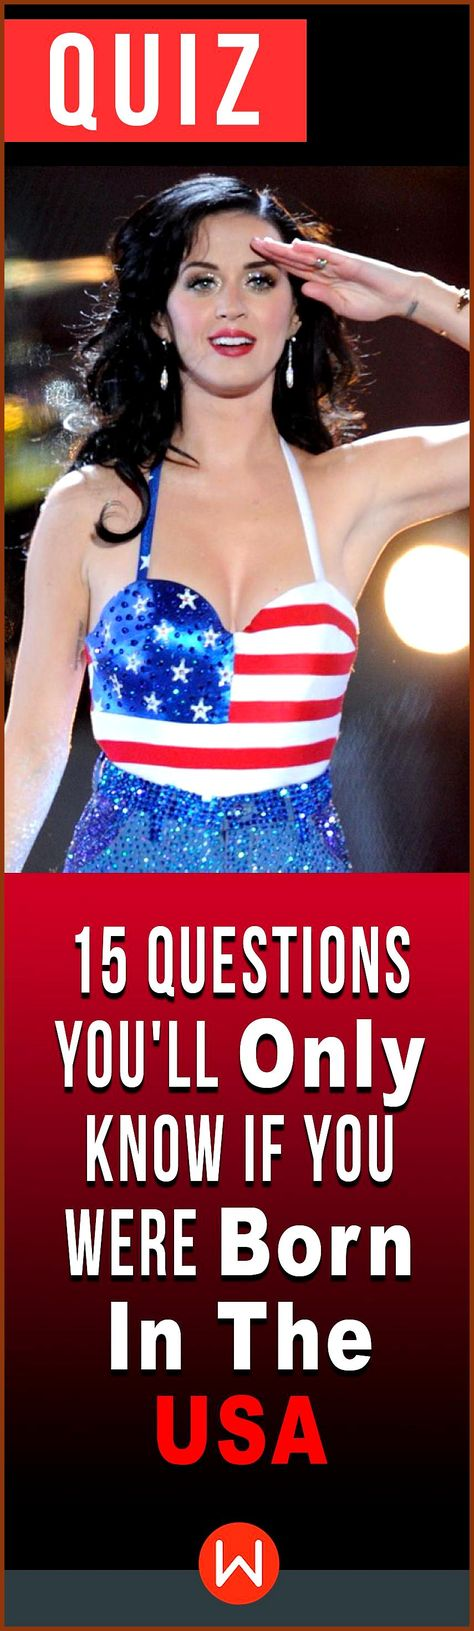 Quiz 15 Questions You ll Only Know If You Were Born In The USA How well do you know America This test will reveal if you are in fact an authentic American Do you know all of these American facts How much American History do you really know U S trivia test Informations About Quiz 15 Questions You ll Only Know If You Were Born In The USA Pin You can  hellip   #egyptianhistoryfacts #historyfactsaustralia #questions #randomhistoryfacts #youll